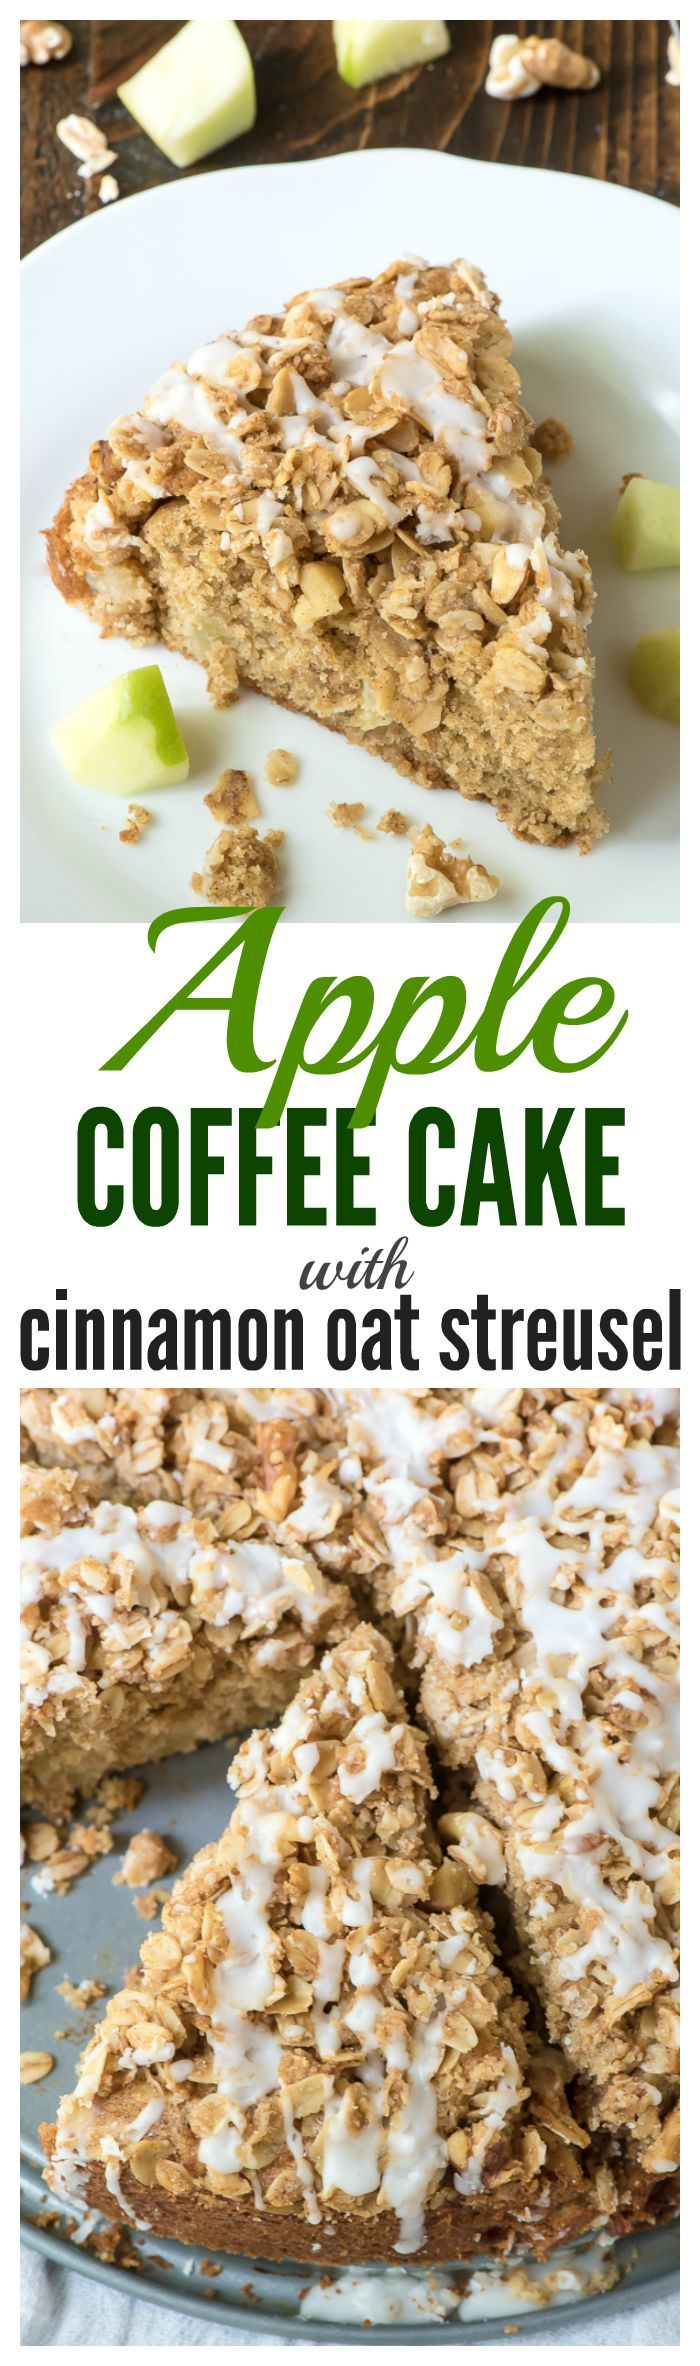 Apple Coffee Cake with Cinnamon Oat Streusel Topping | Recipe | Apple ...